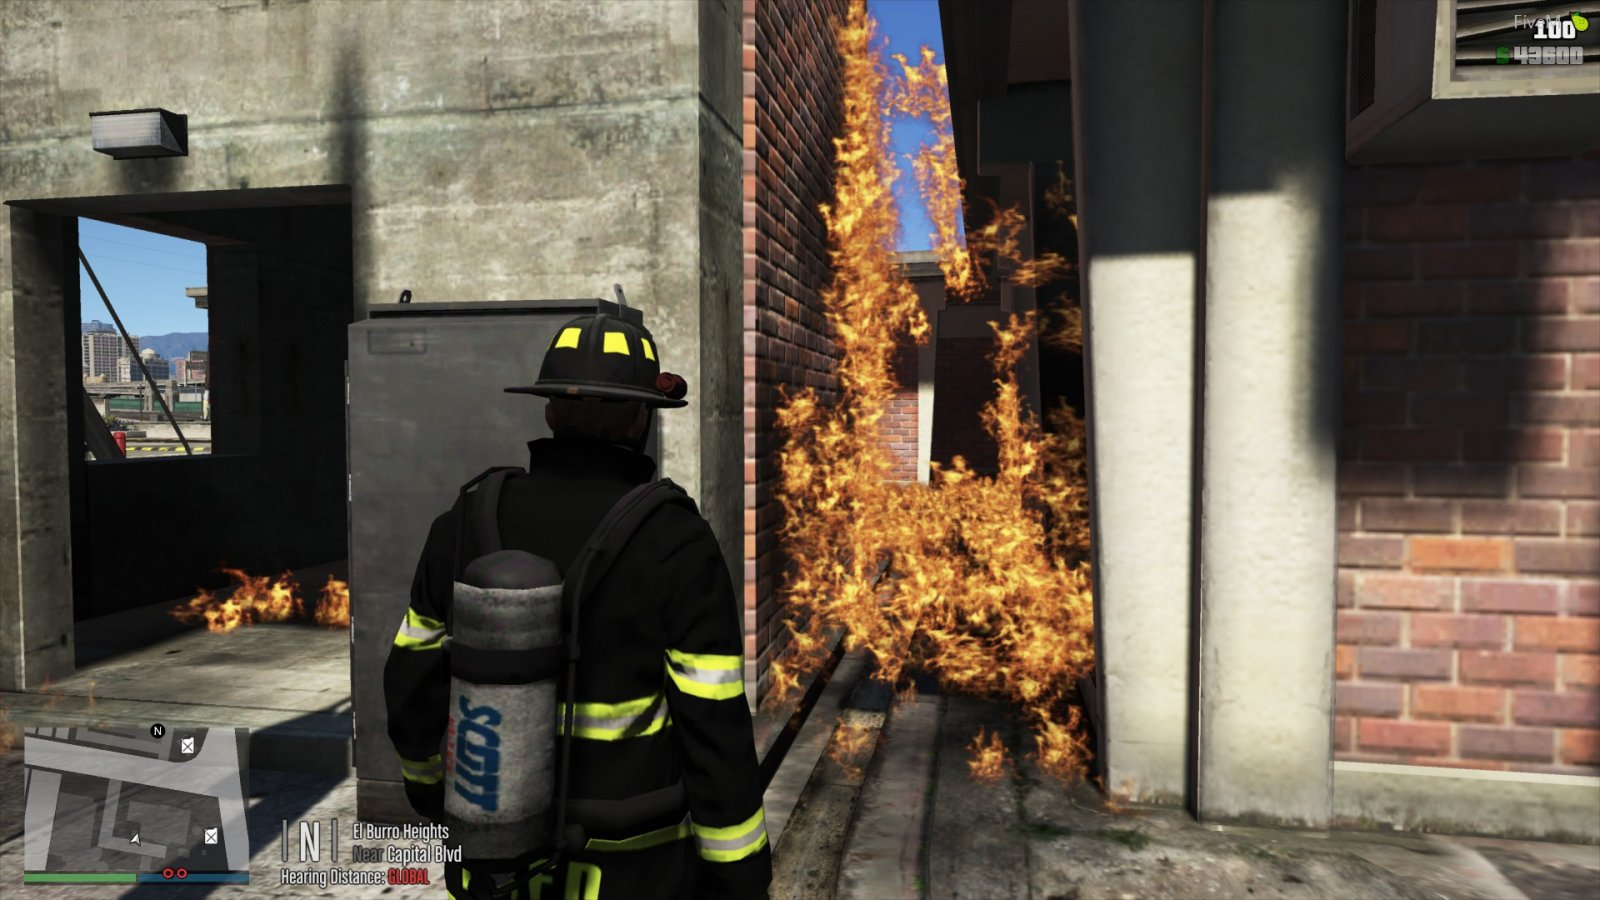 When a fire simulation goes wrong